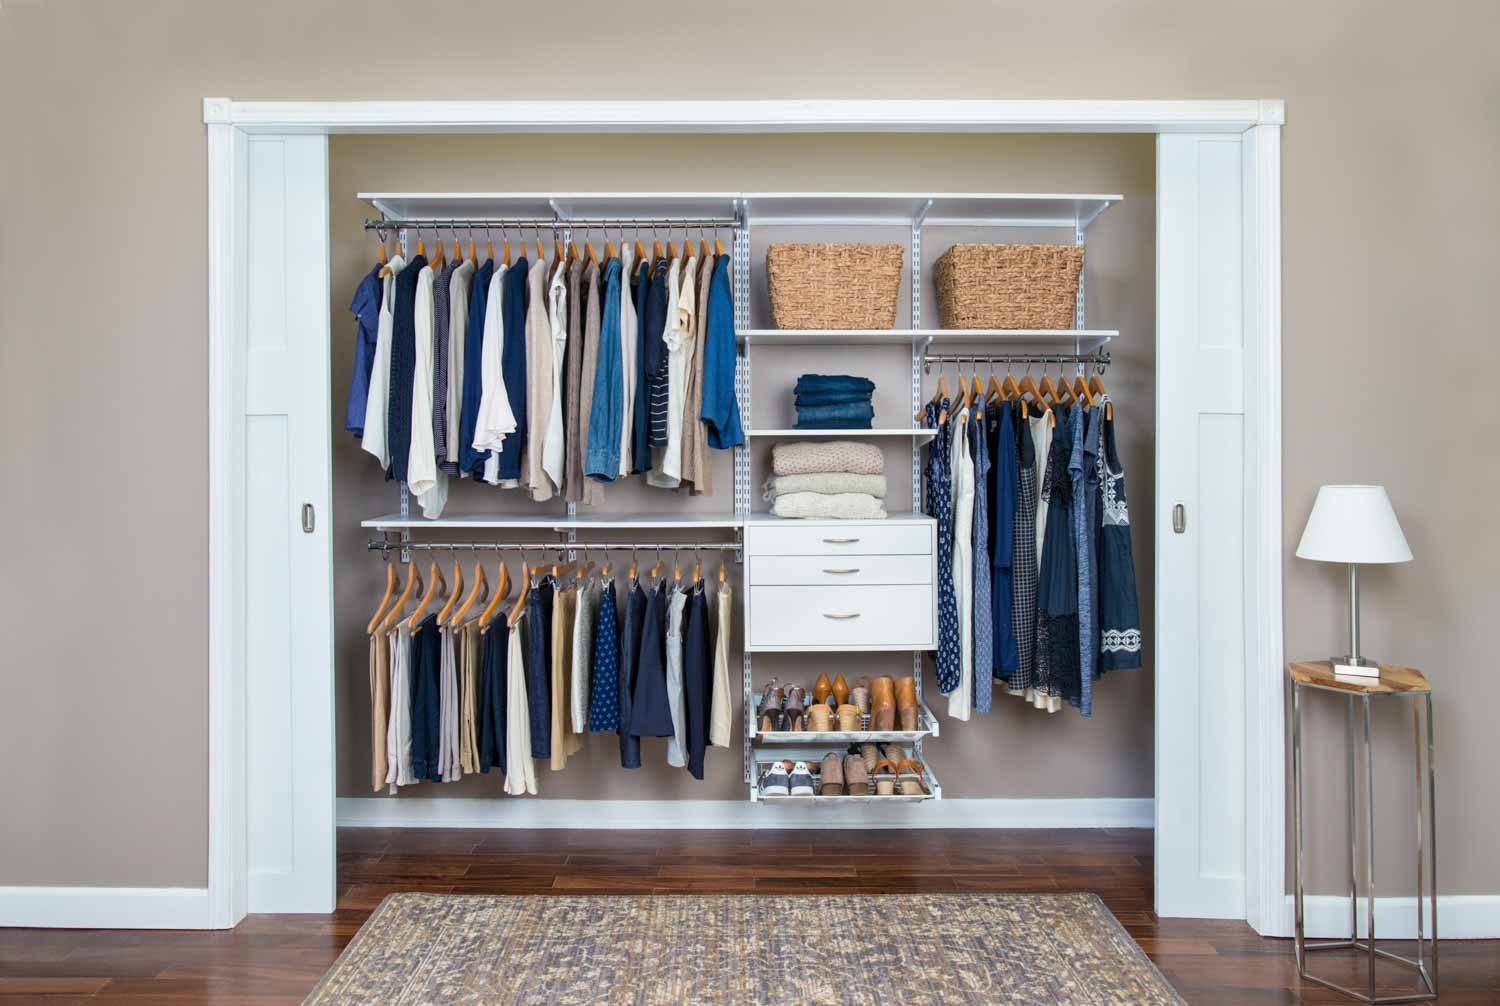 for closets goodly with unique designs ideas get closet organizing minimalist living design bedroom organized